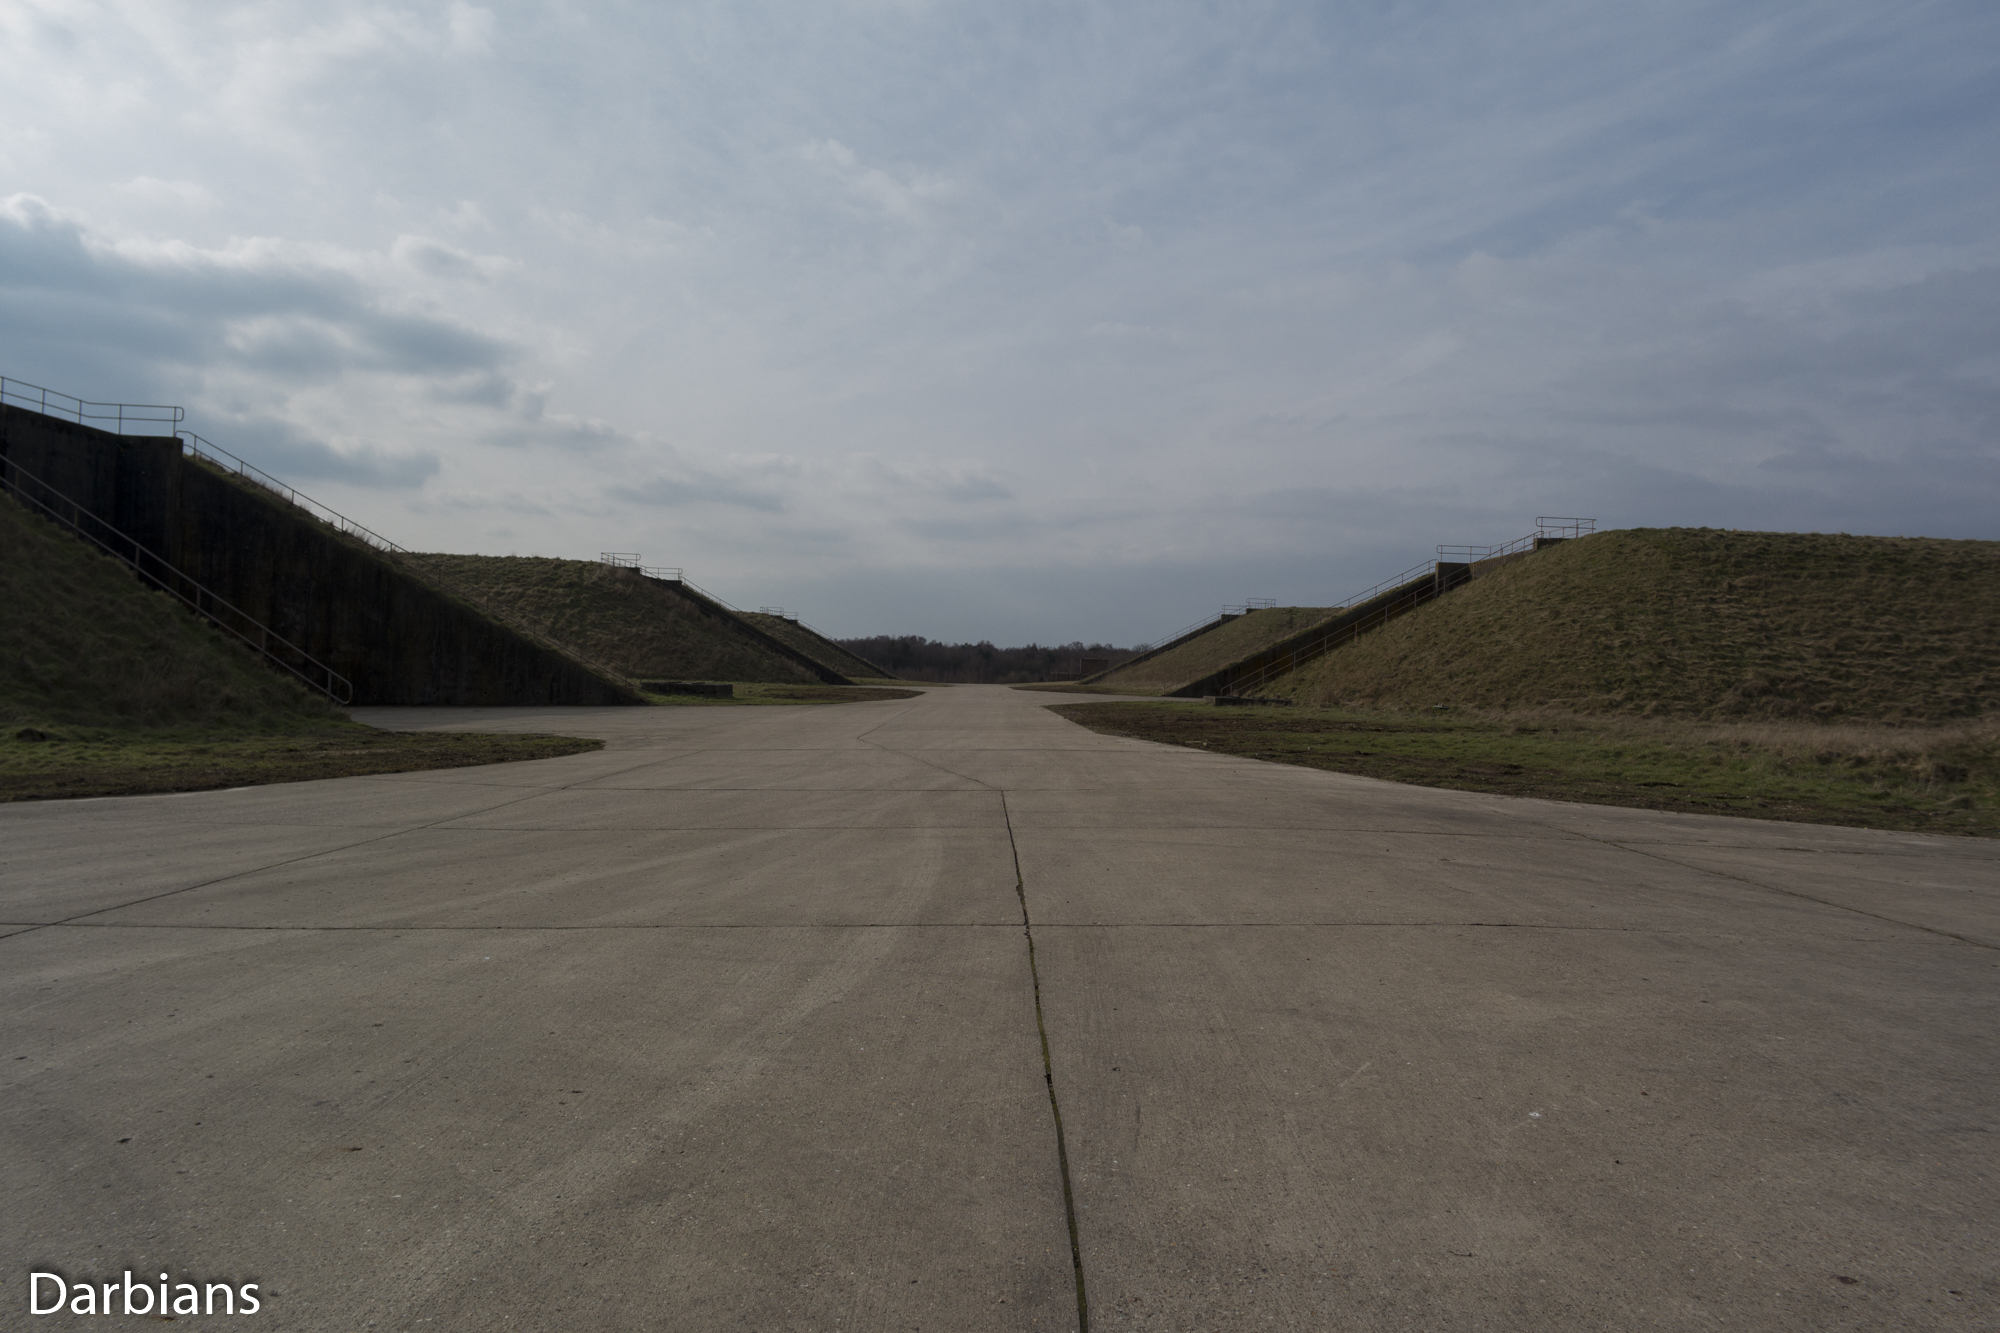 RAF Greenham Common: The main access to all the silos.